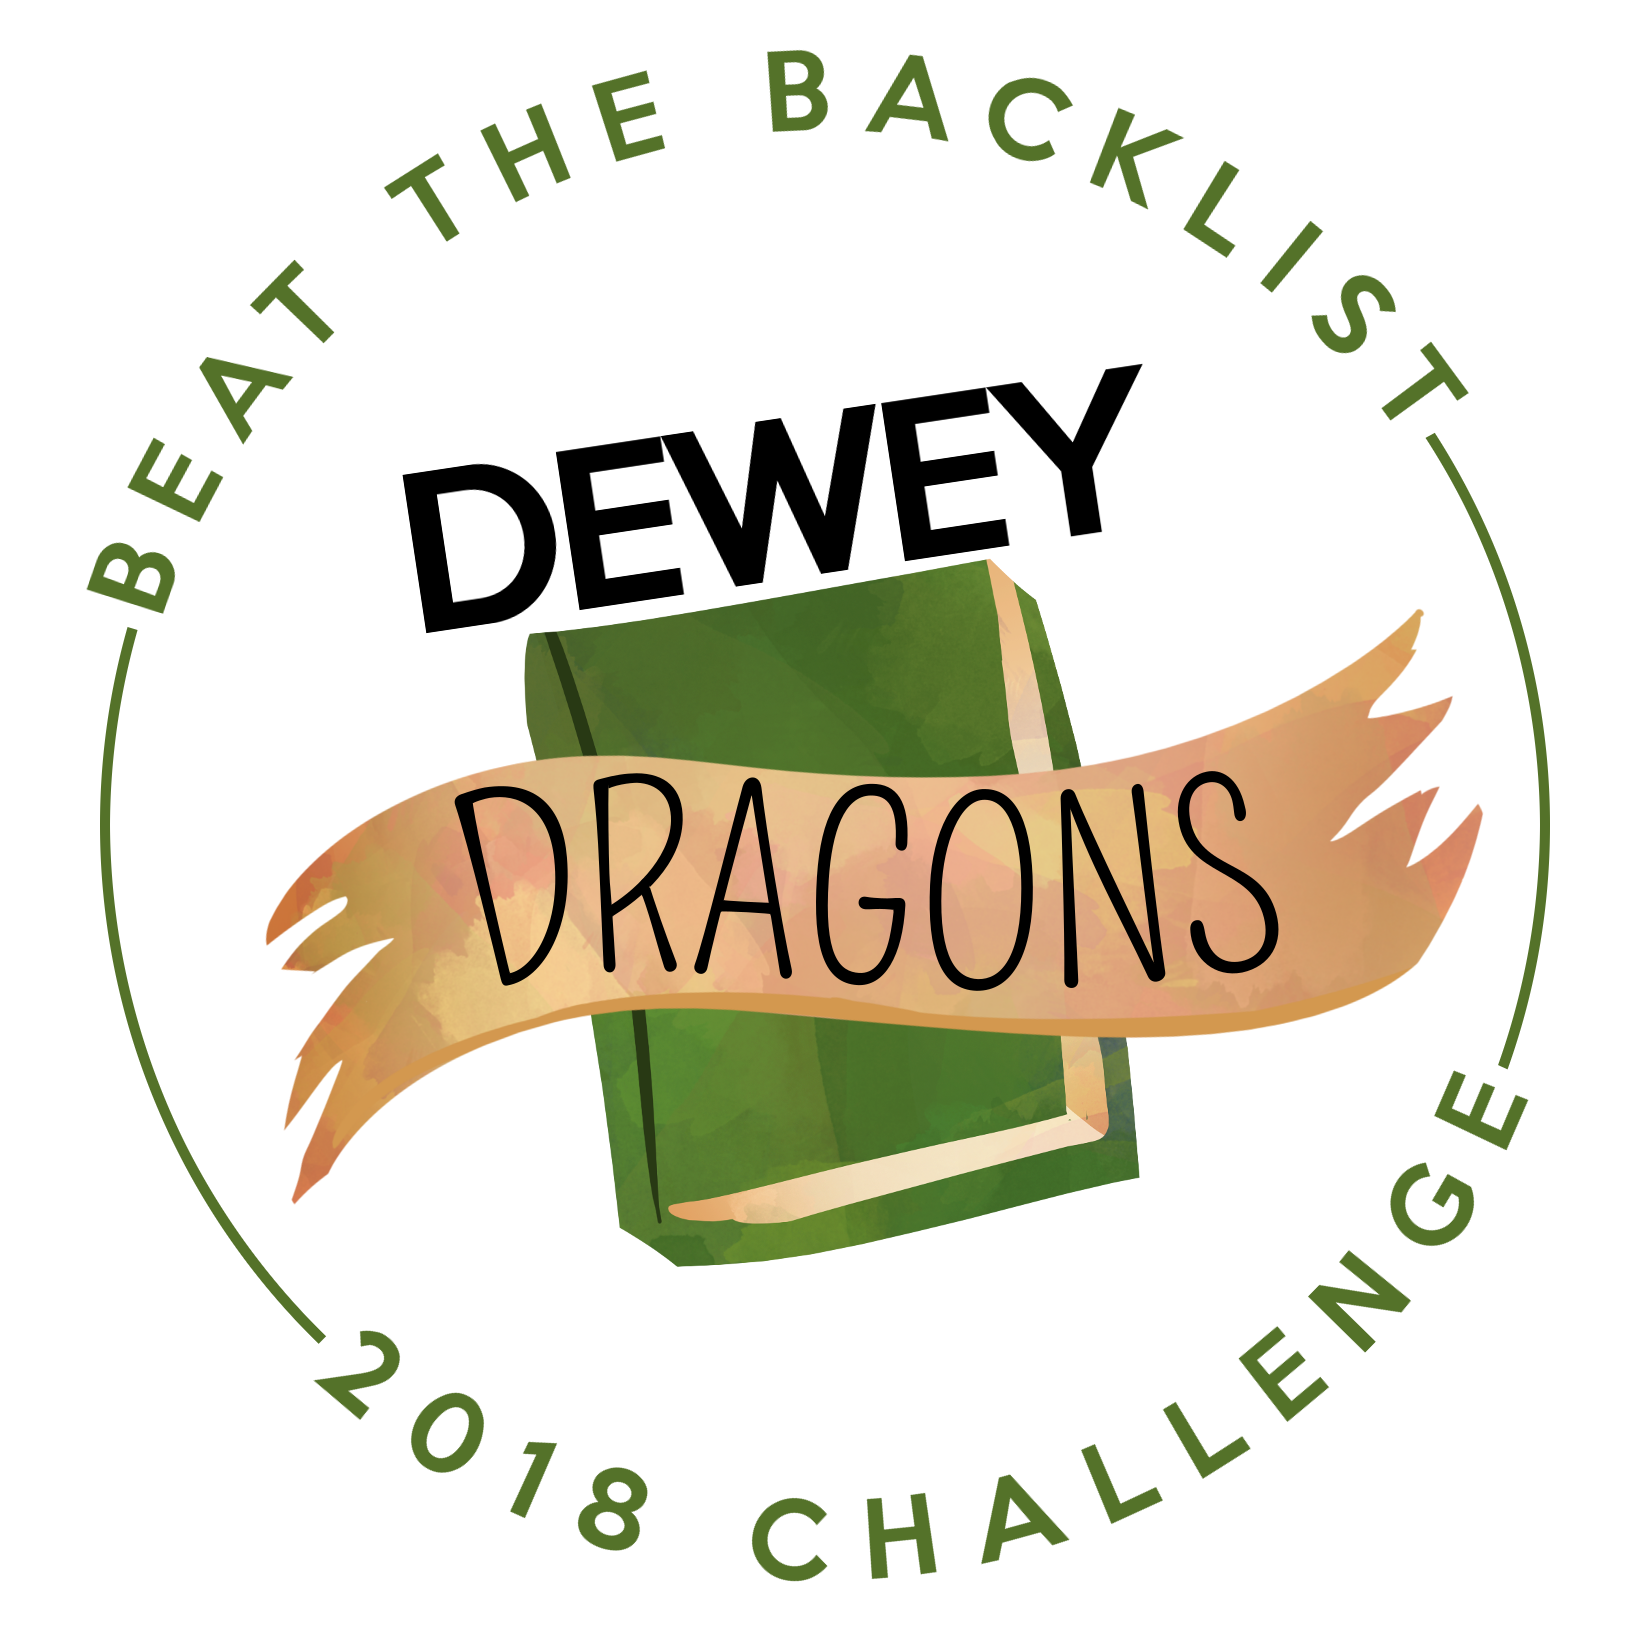 2018 Beat the Backlist